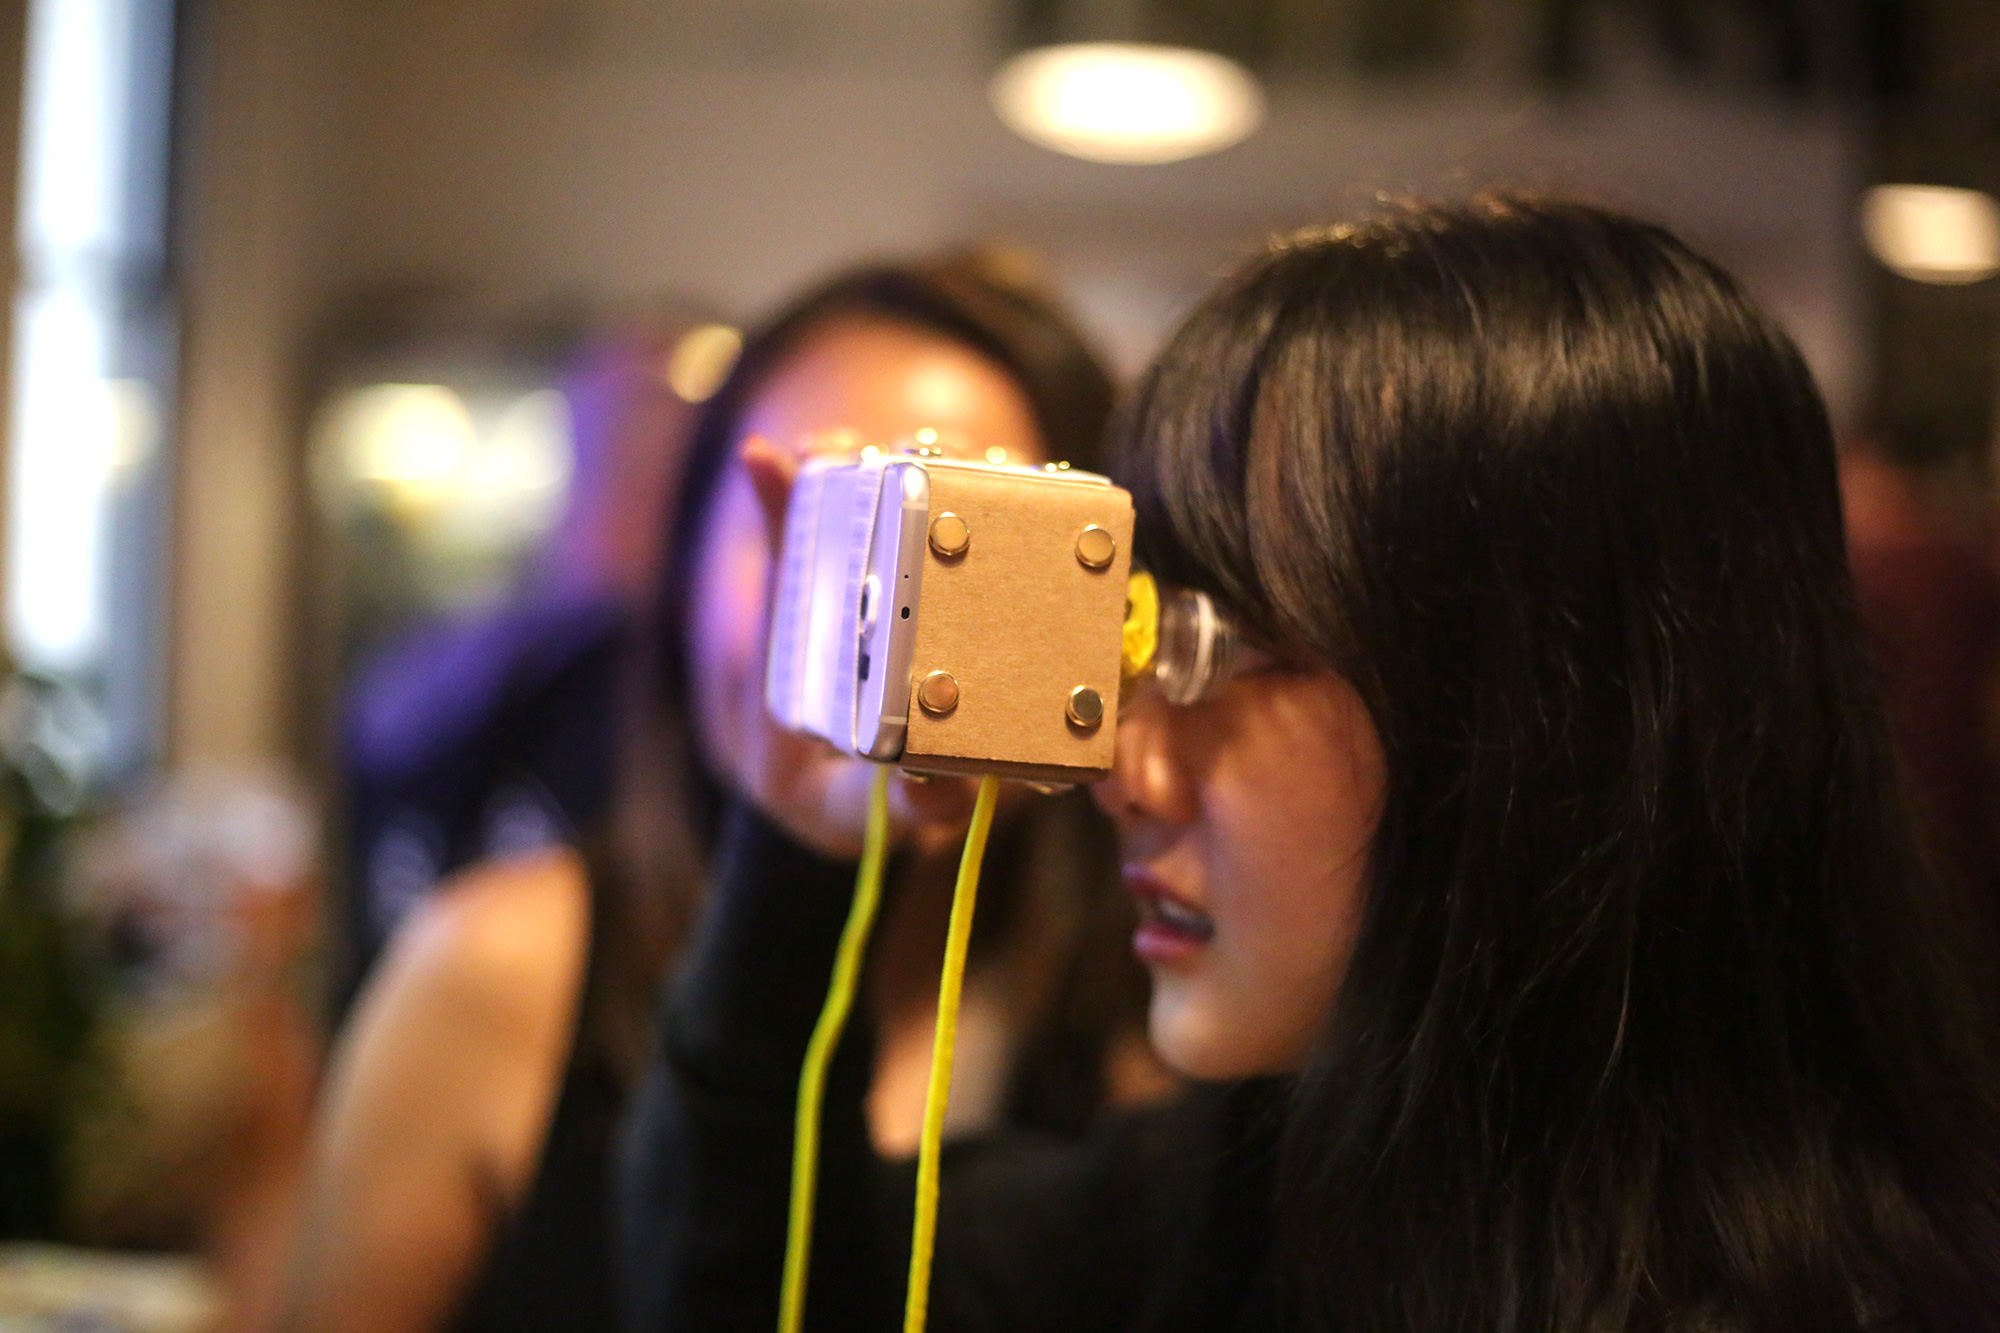 DIY VR goggles made from foraged and reclaimed materials. Photo courtesy of ITP Camp via Flickr.